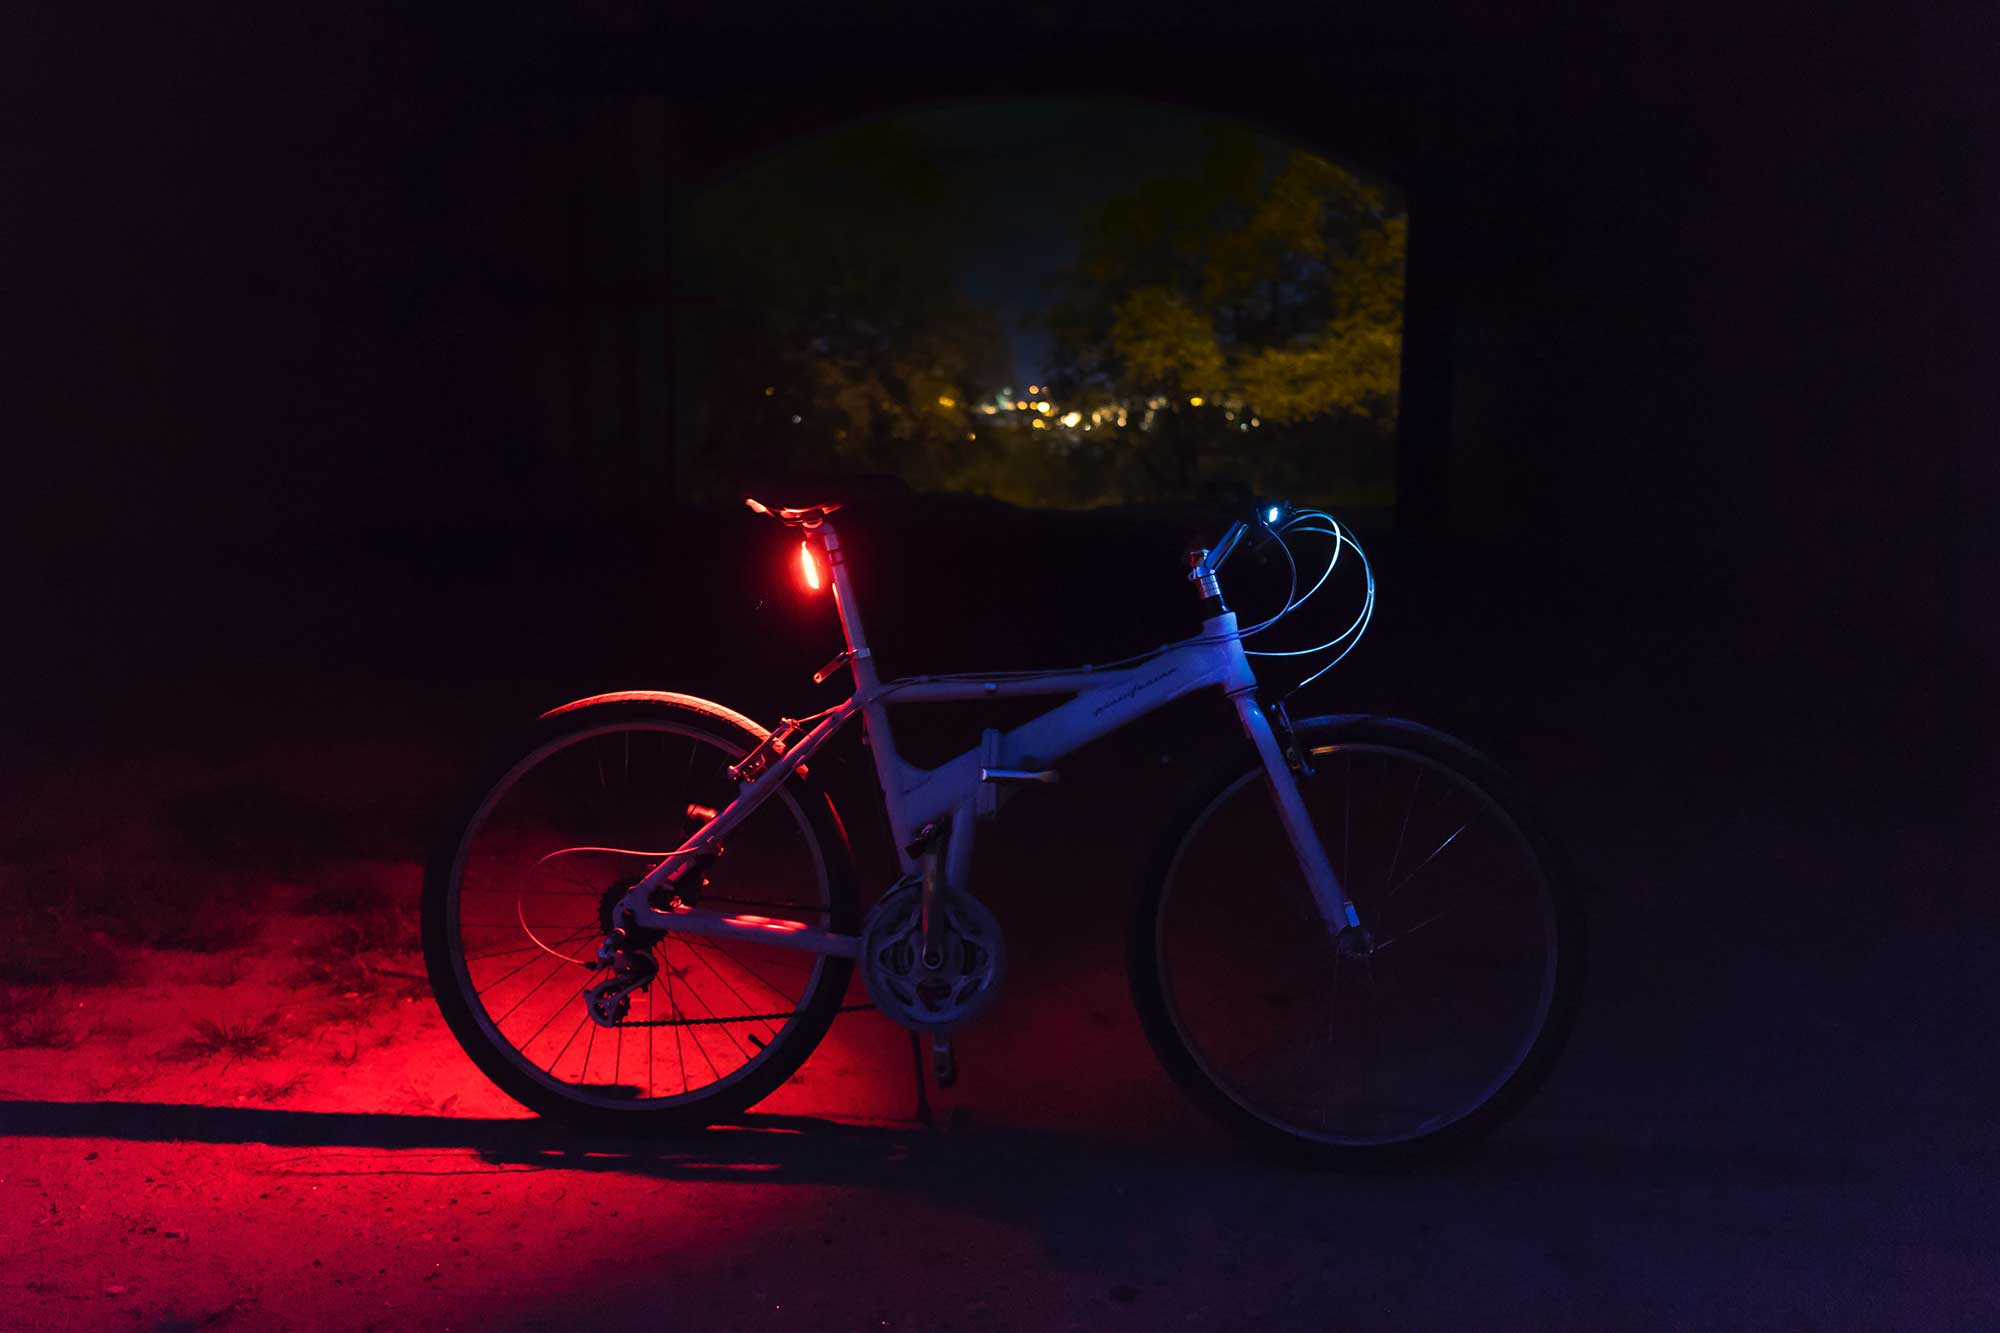 Bike with back light on at night